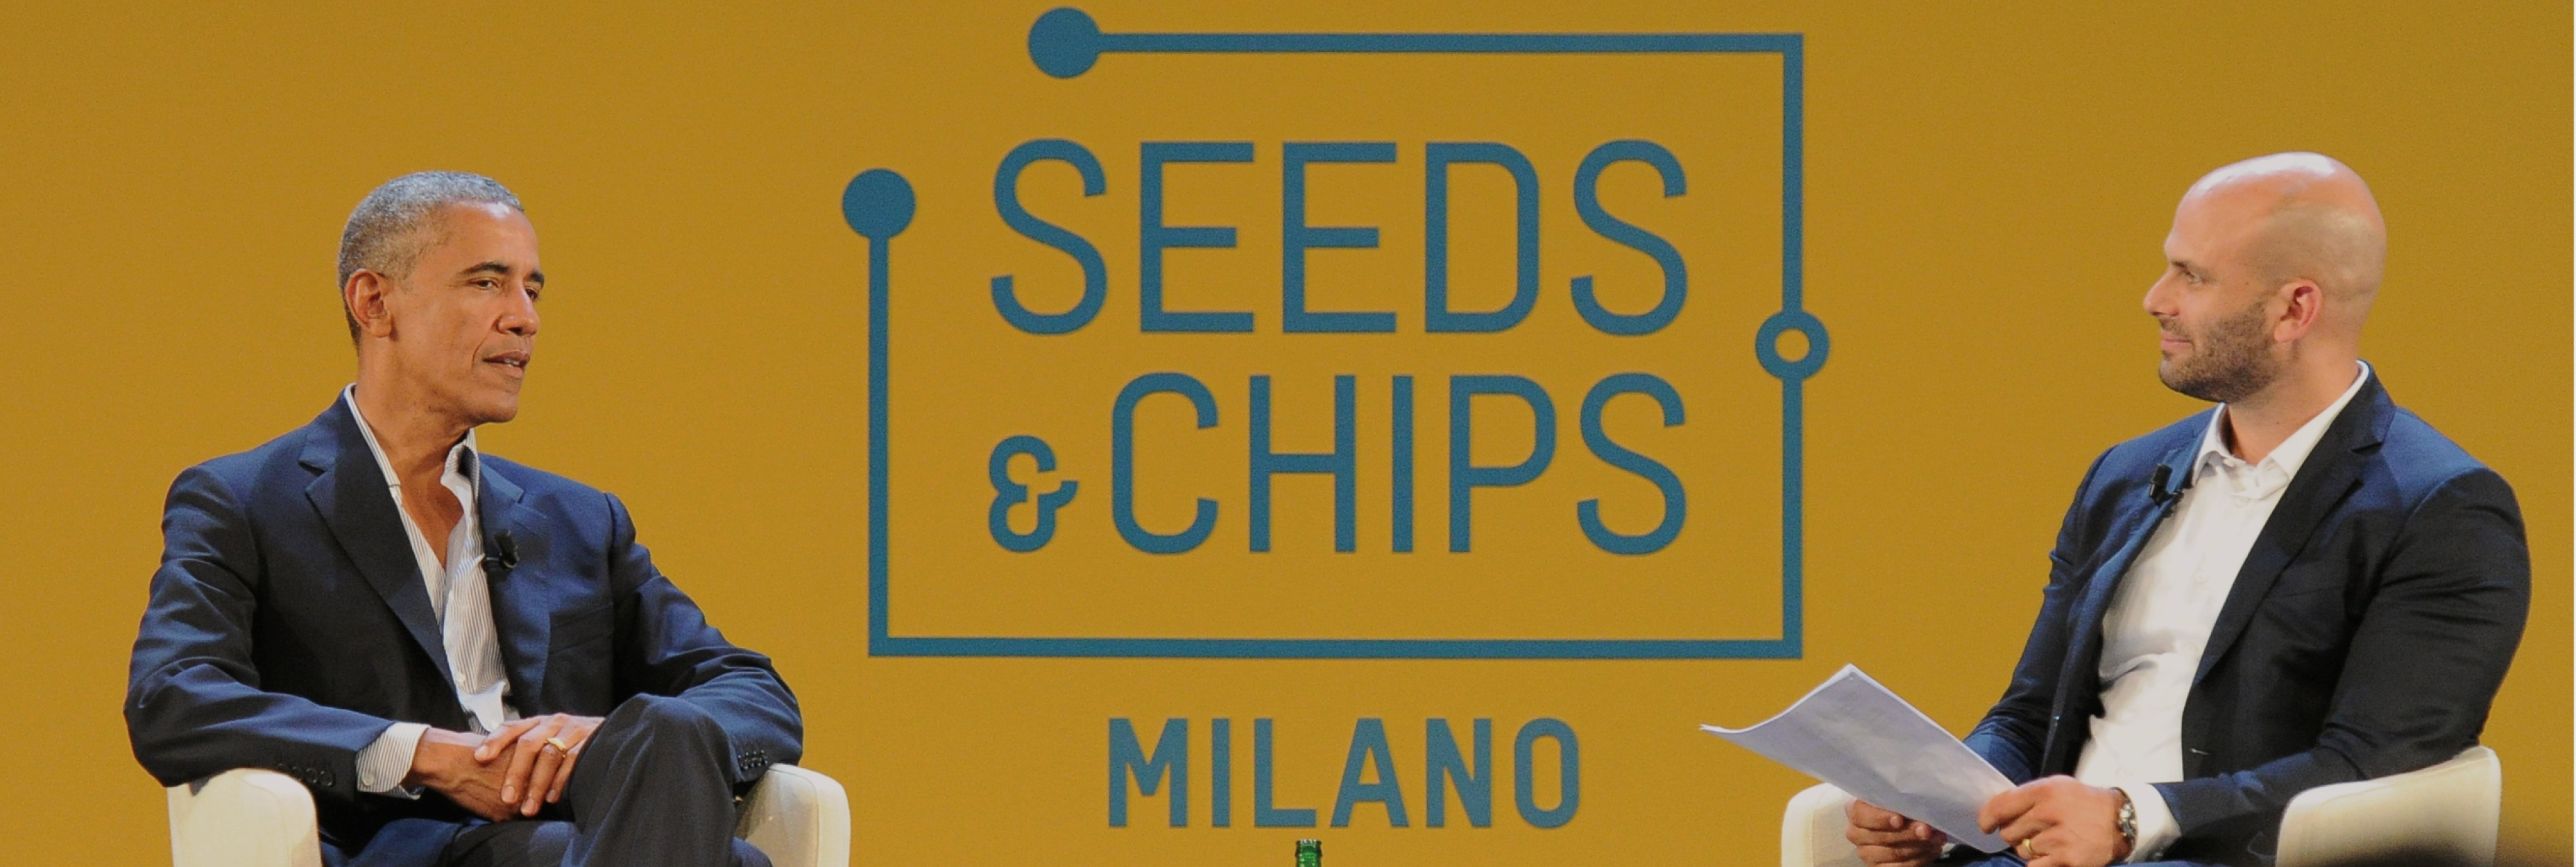 Seeds&Chips 2017